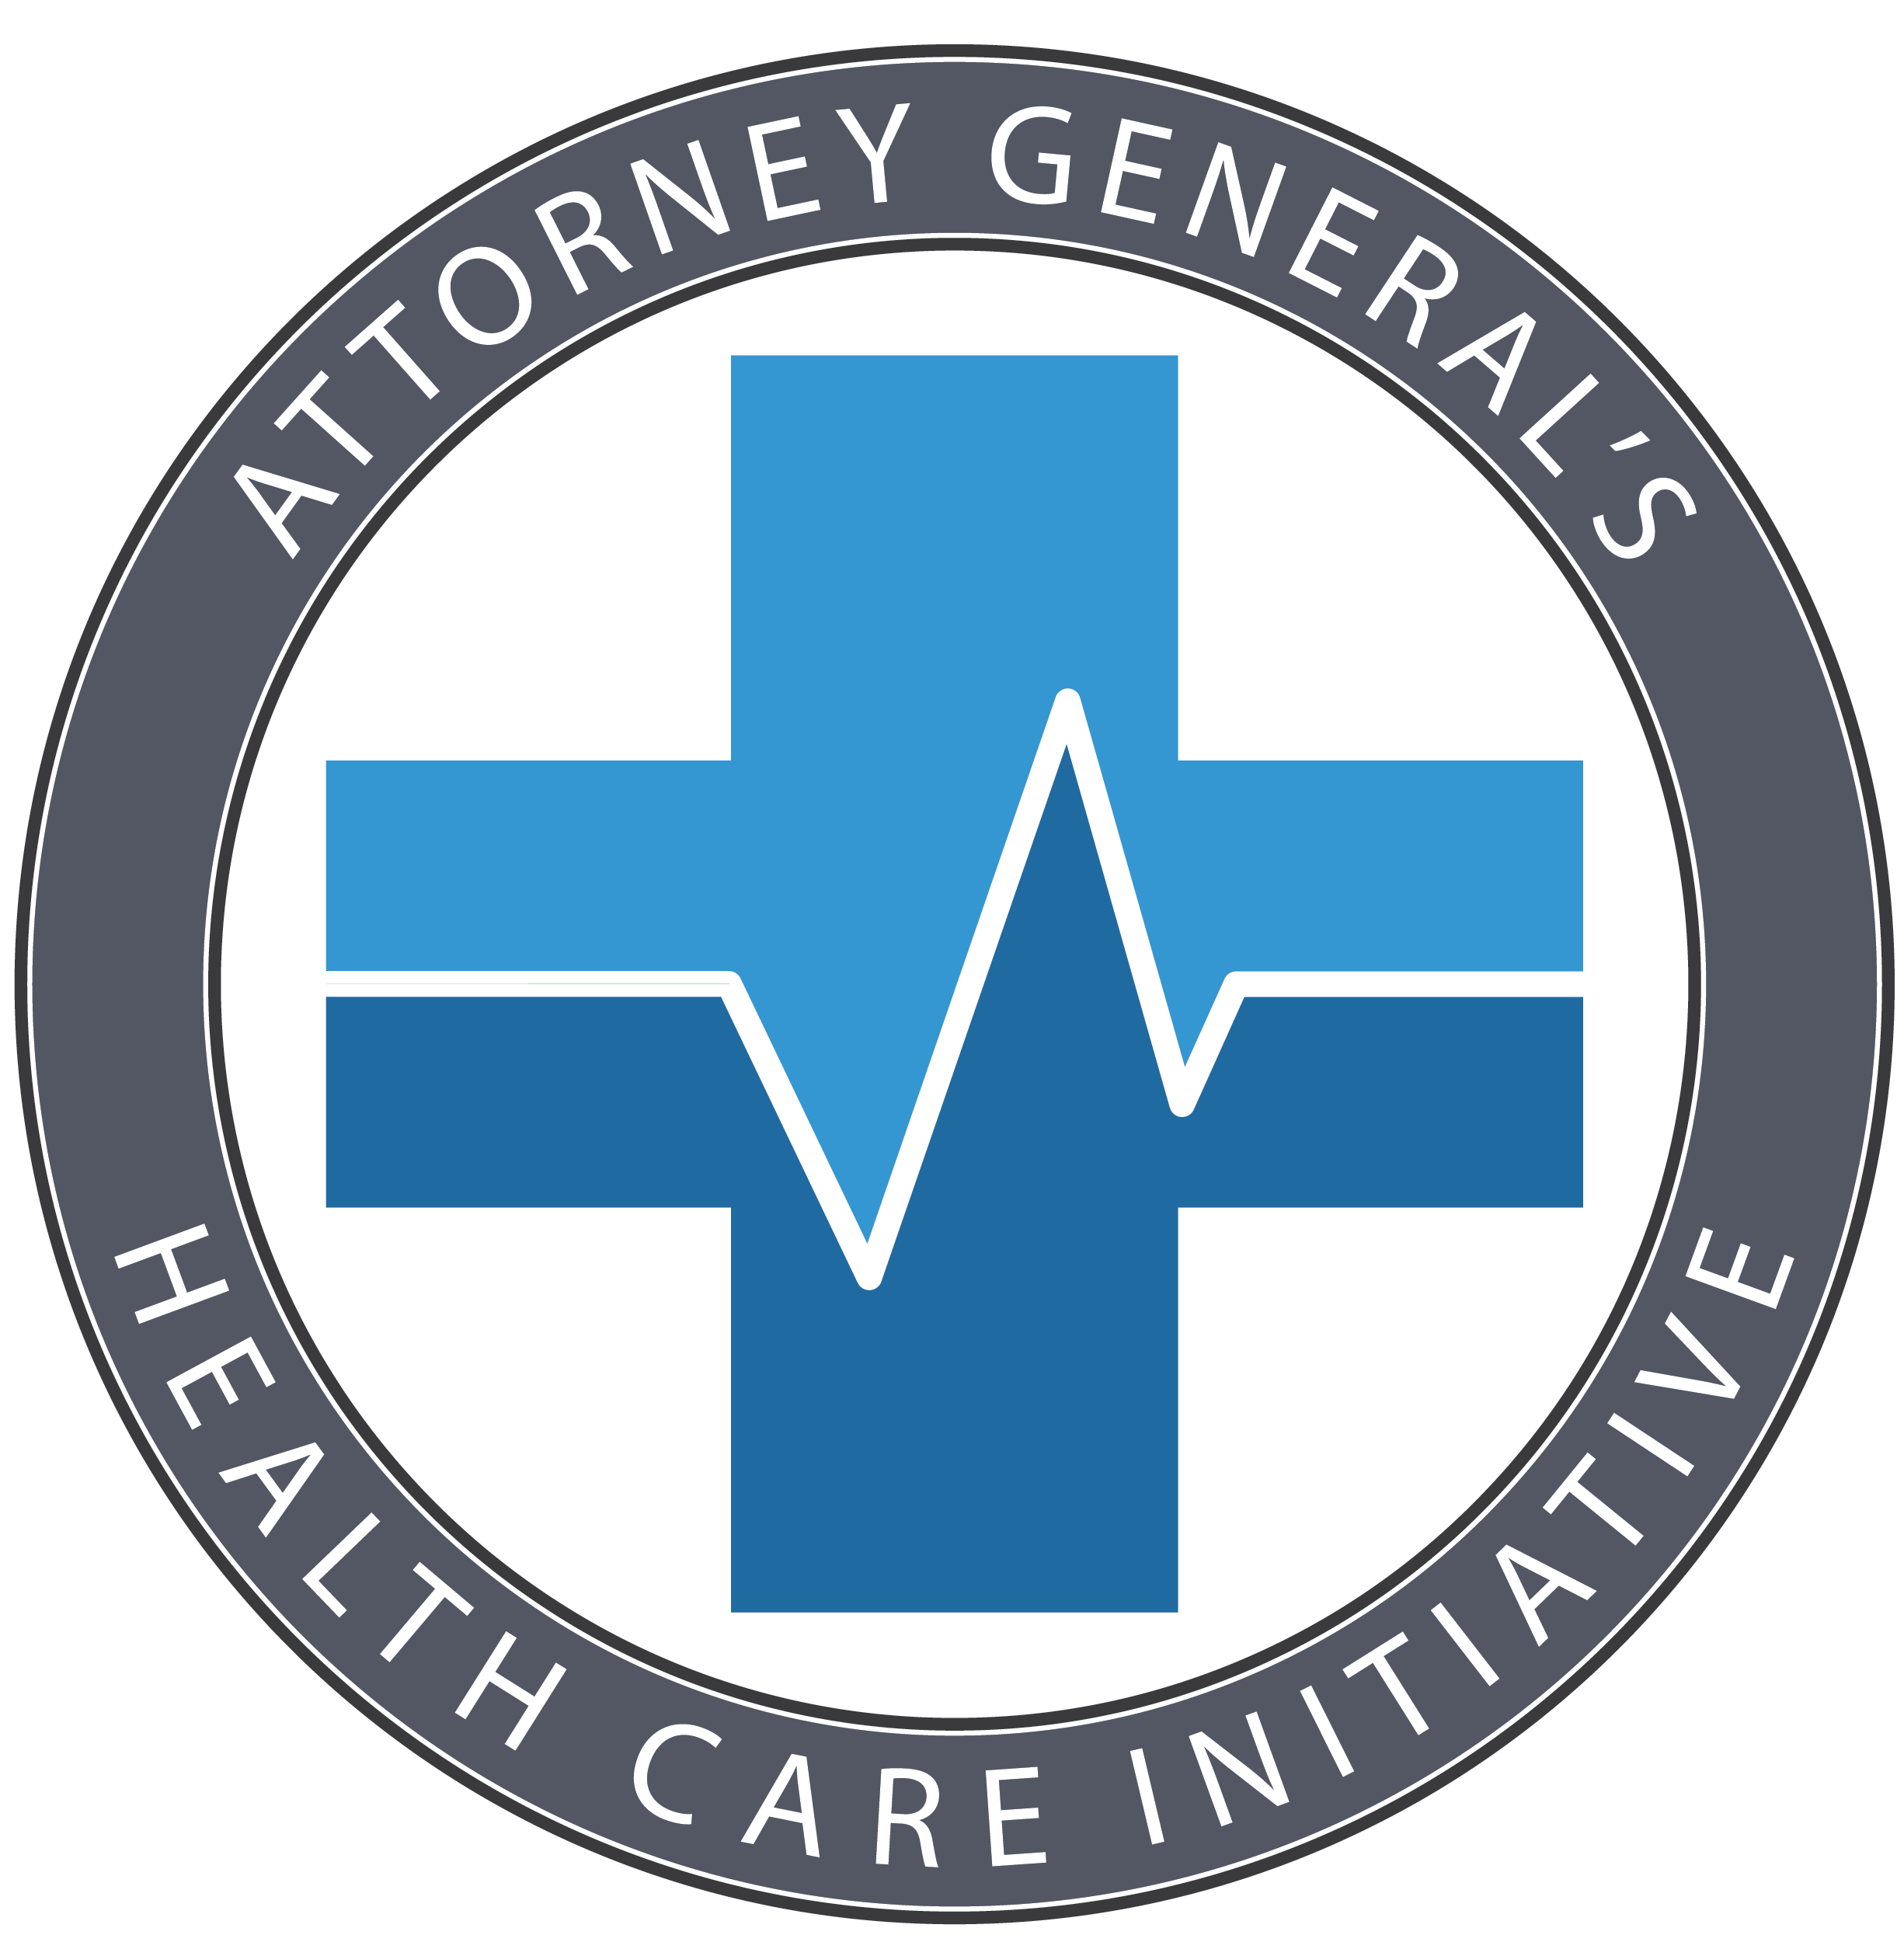 Attorney General's Office Health Care Logo